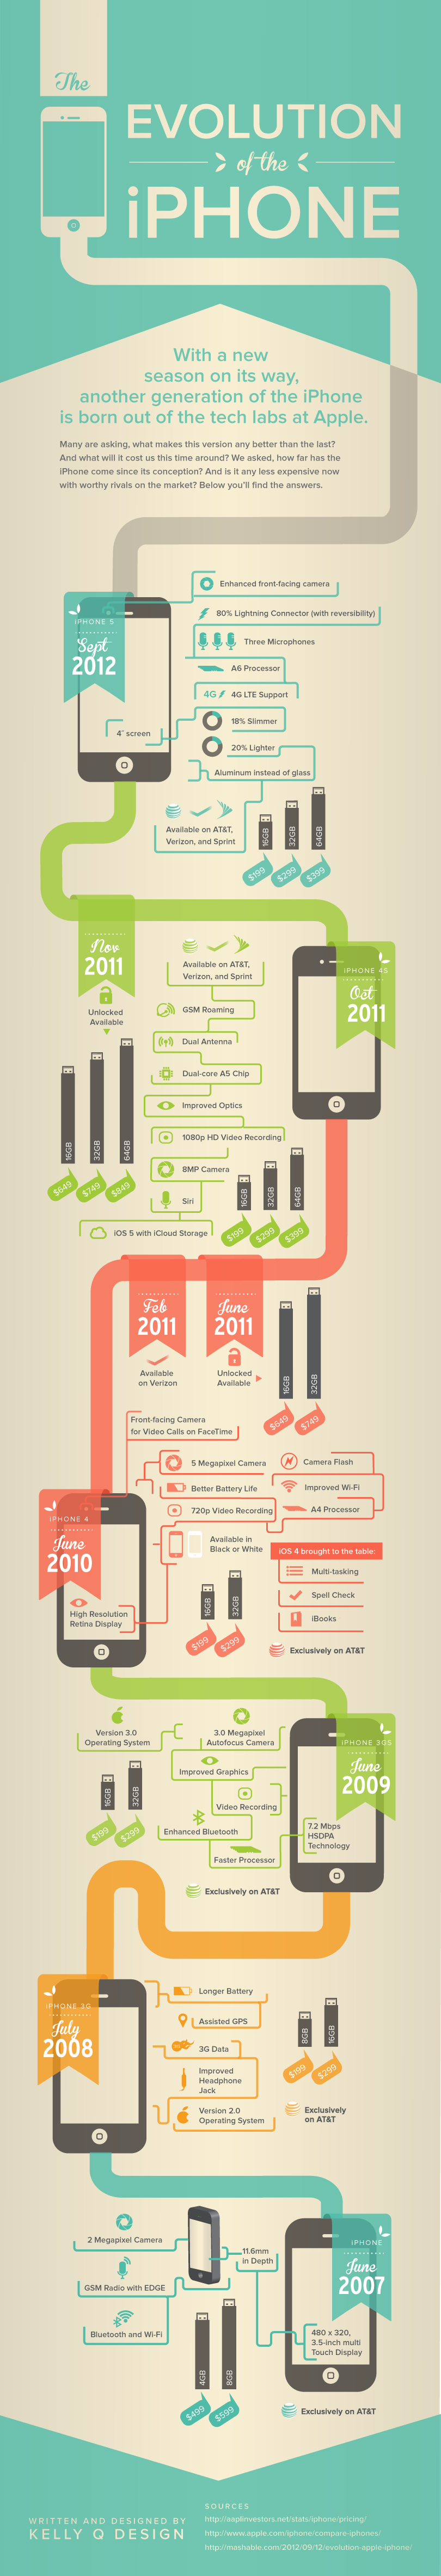 The Evolution of the iPhone #infographic #아이폰 #인포그래픽